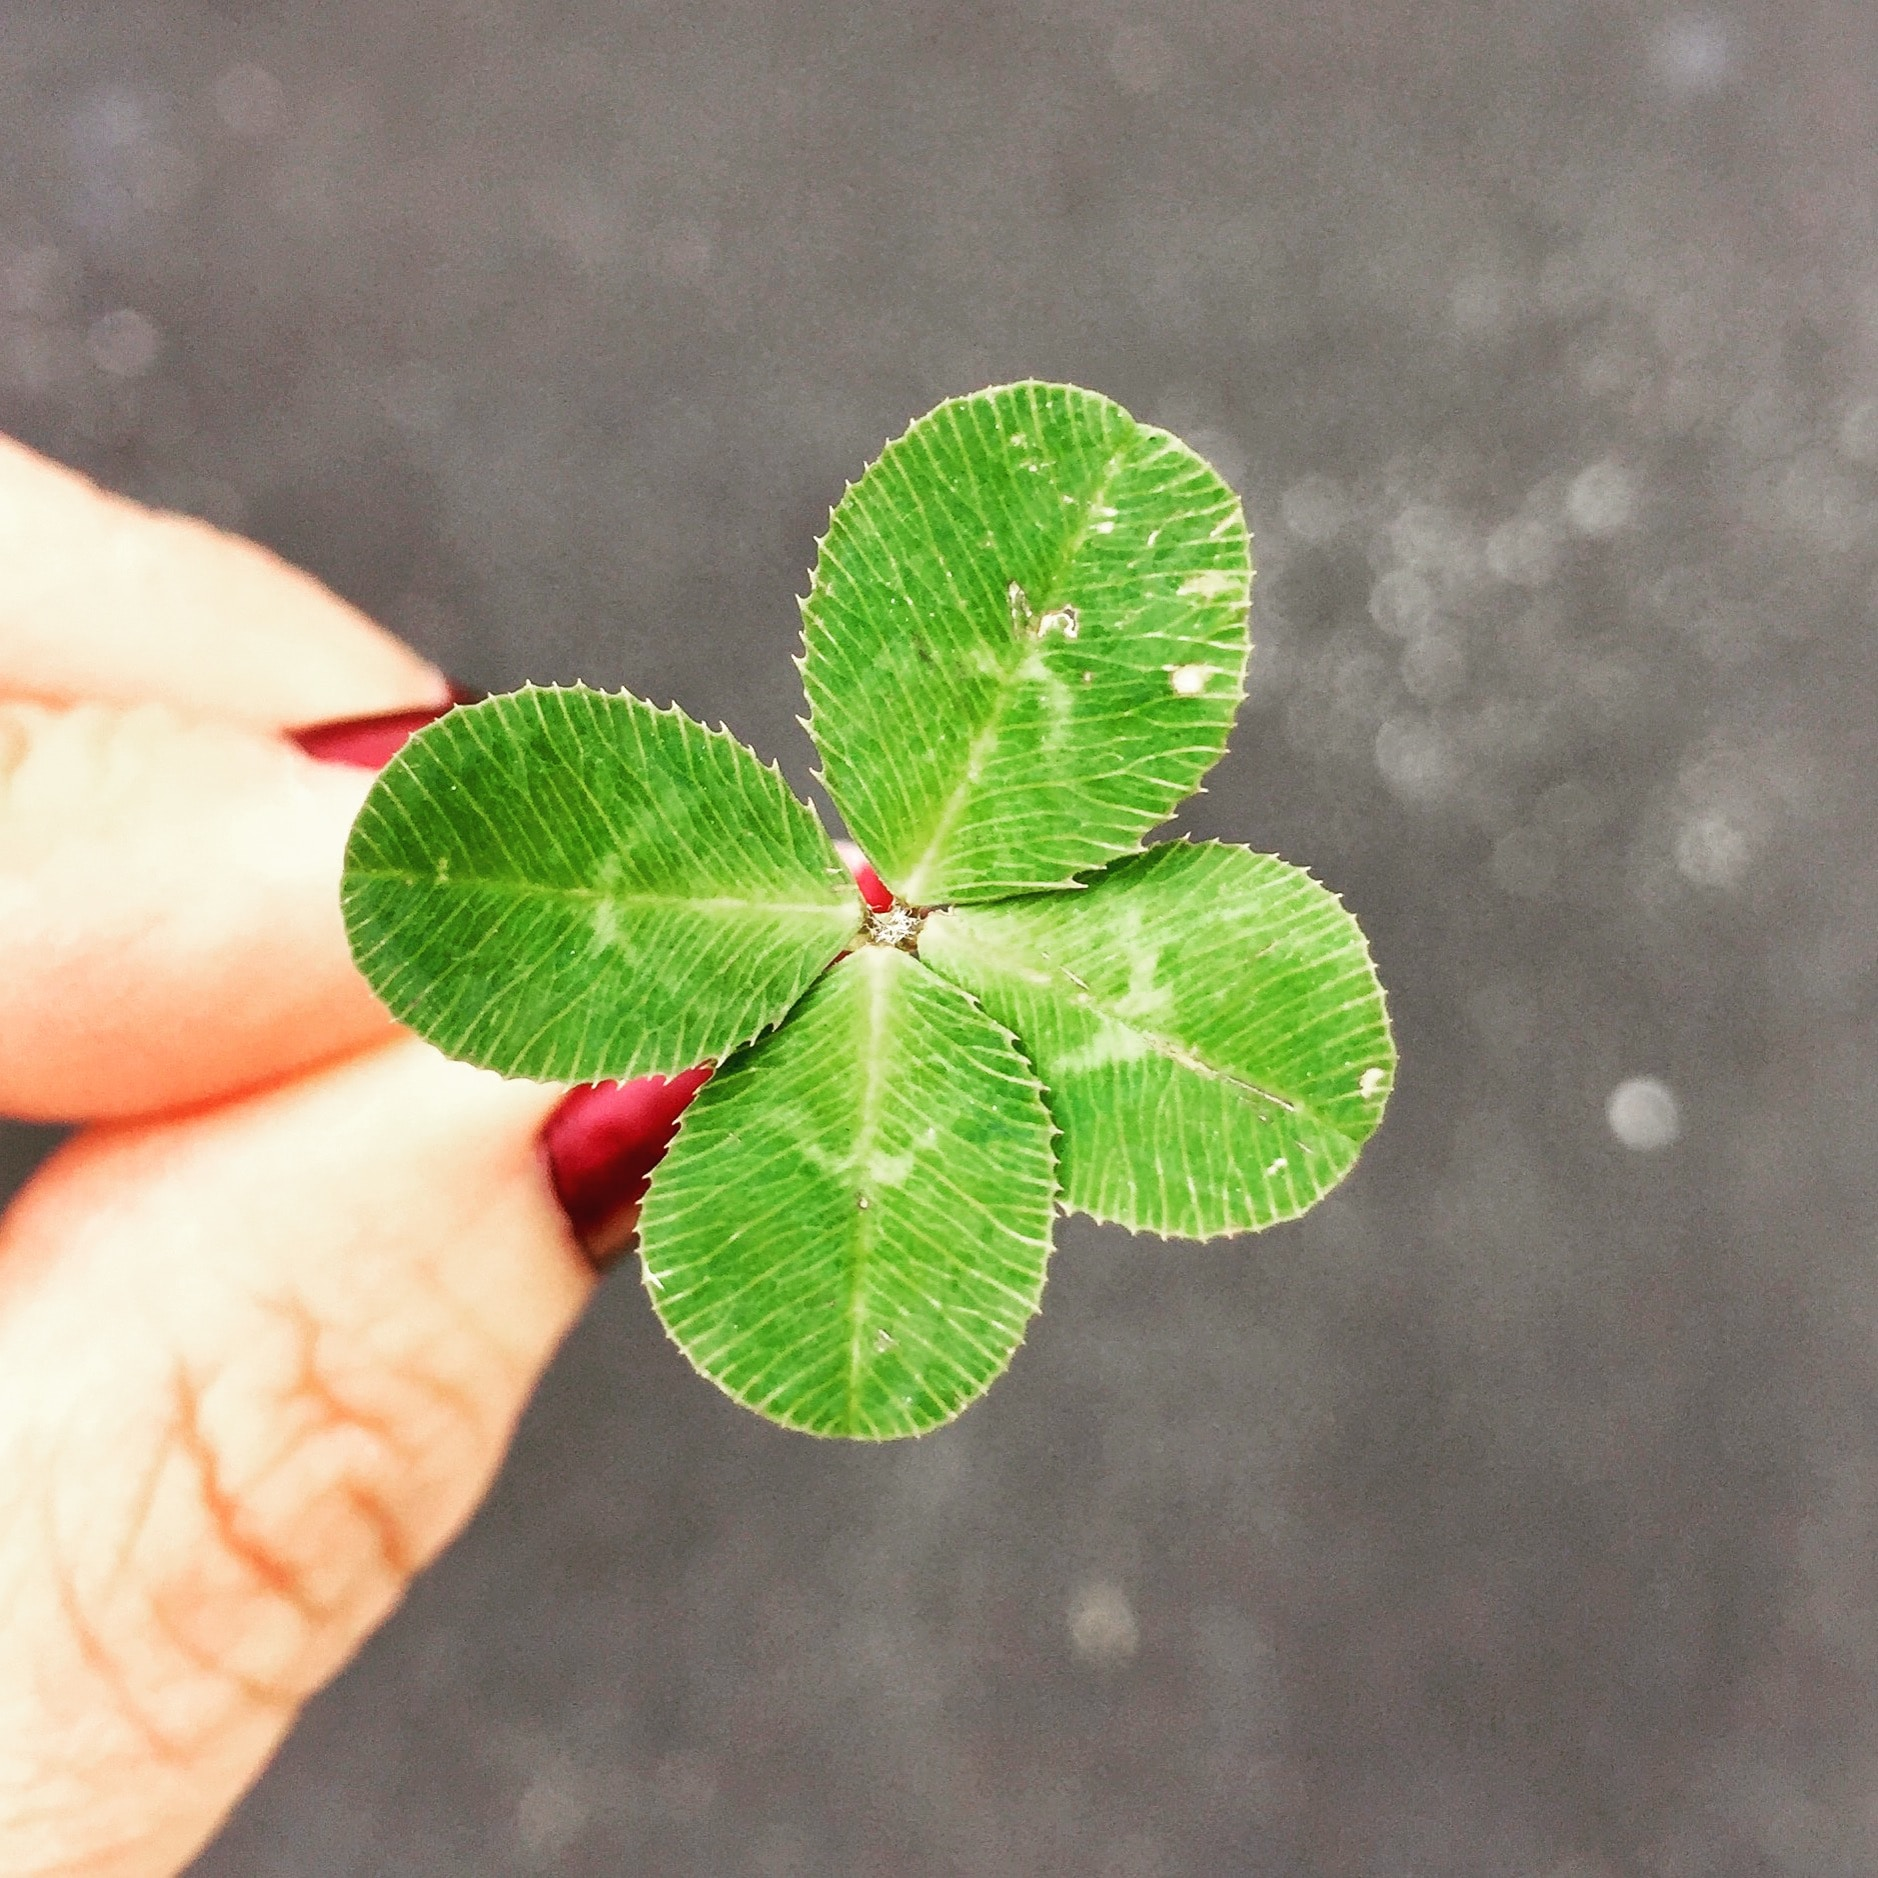 There is an equal amount of good luck as bad luck waiting for you. Photo by Amy Reed on Unsplash